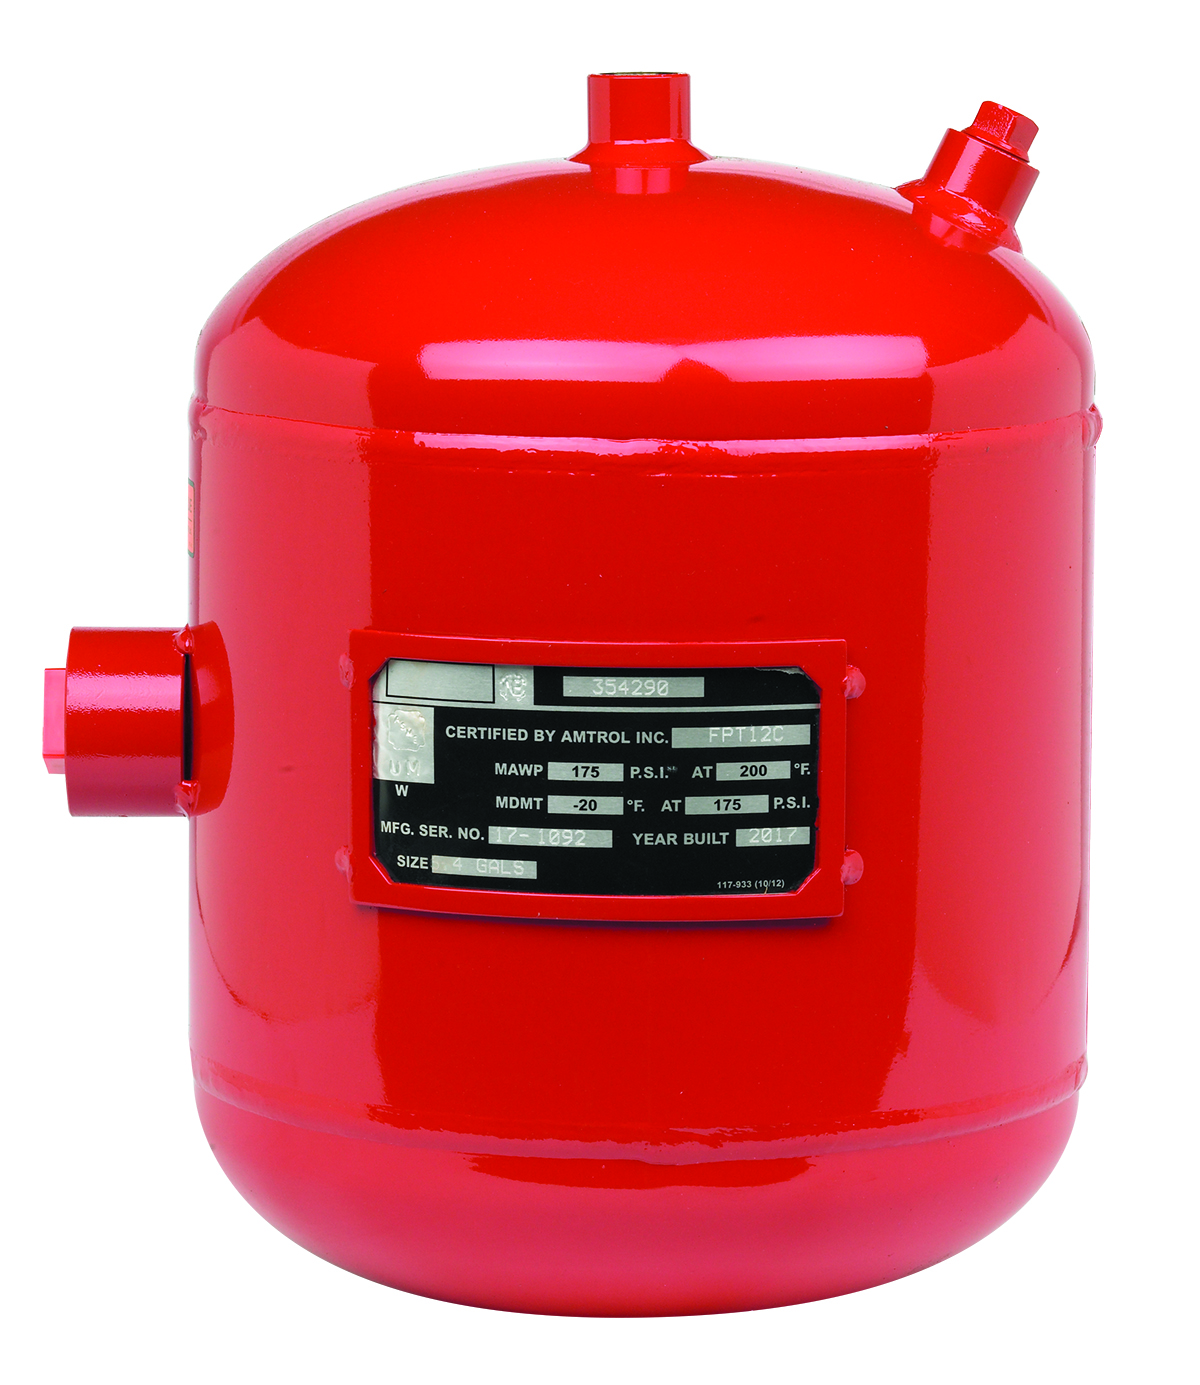 WHY EXPANSION TANKS HELP YOU MAINTAIN YOUR LISTED ANTIFREEZE